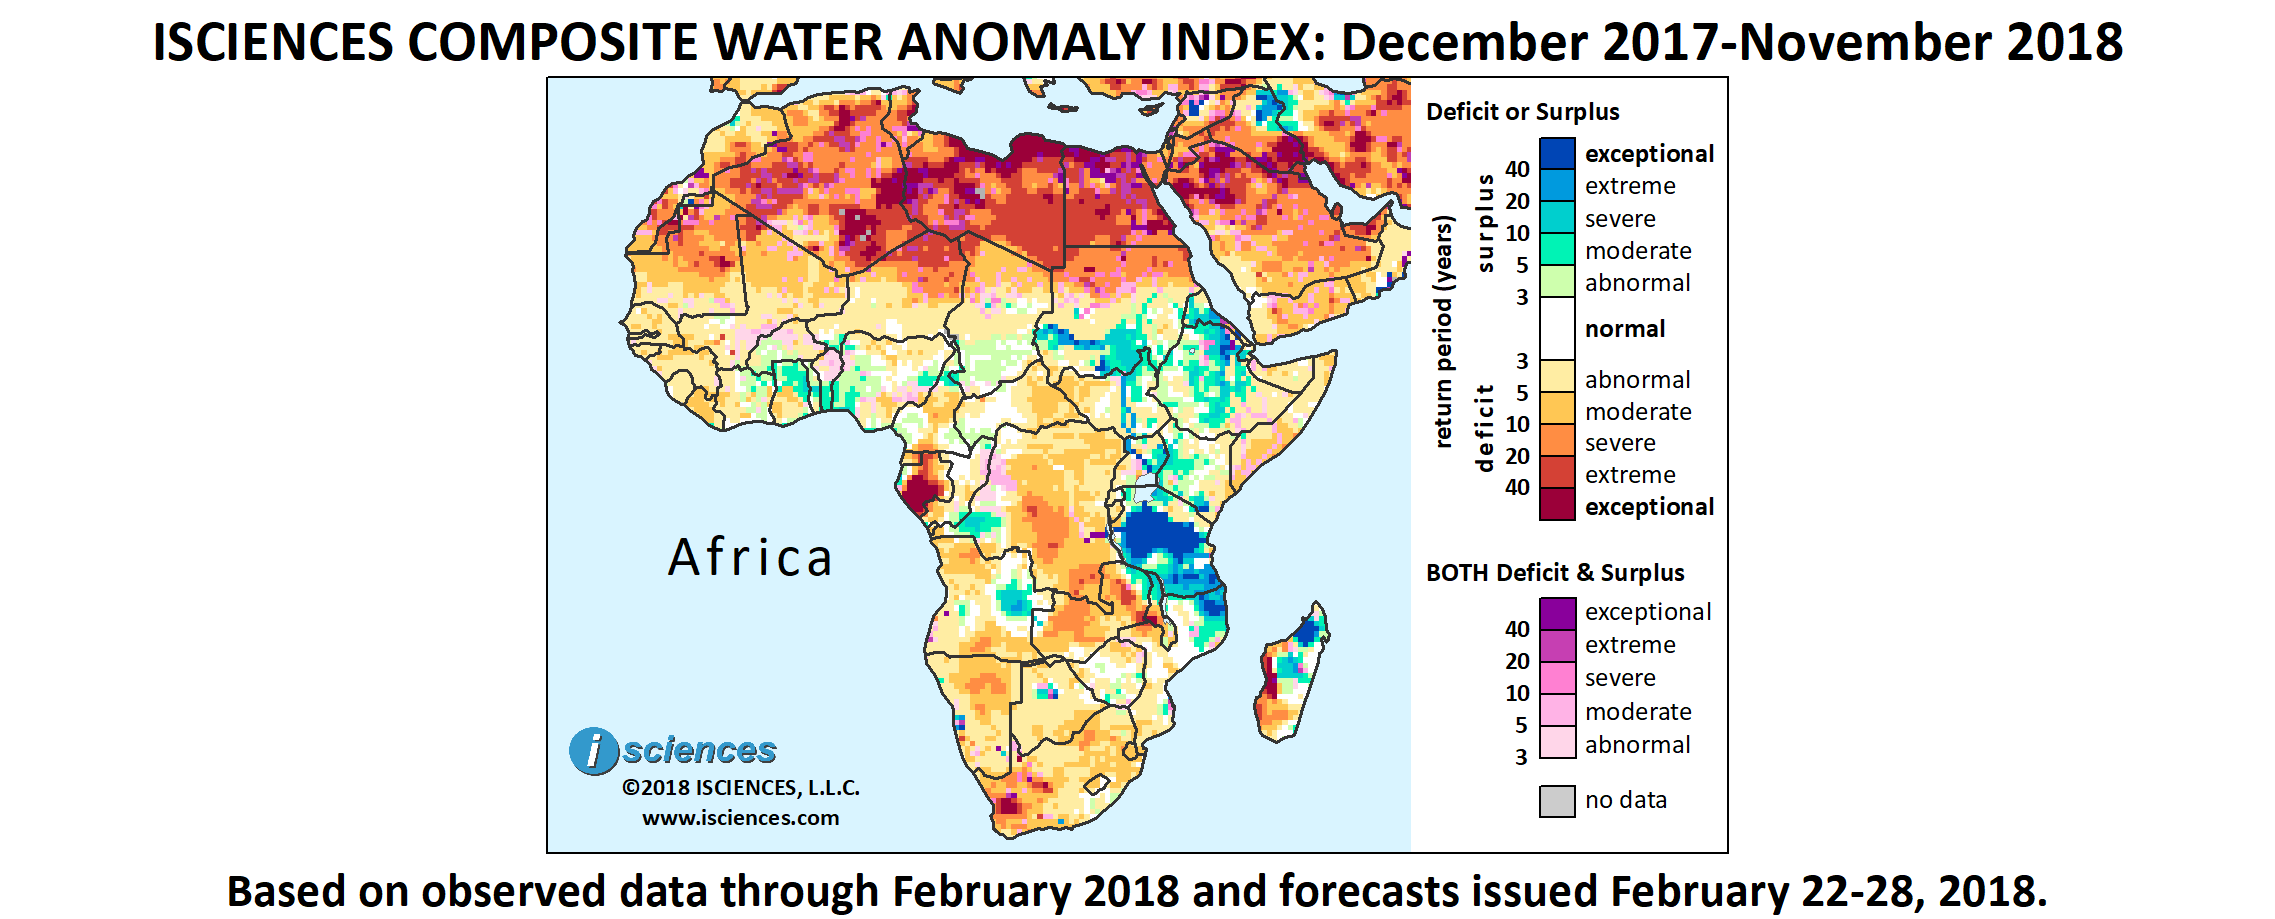 ISciences_Africa_R201802_12mo_twit_pic.png